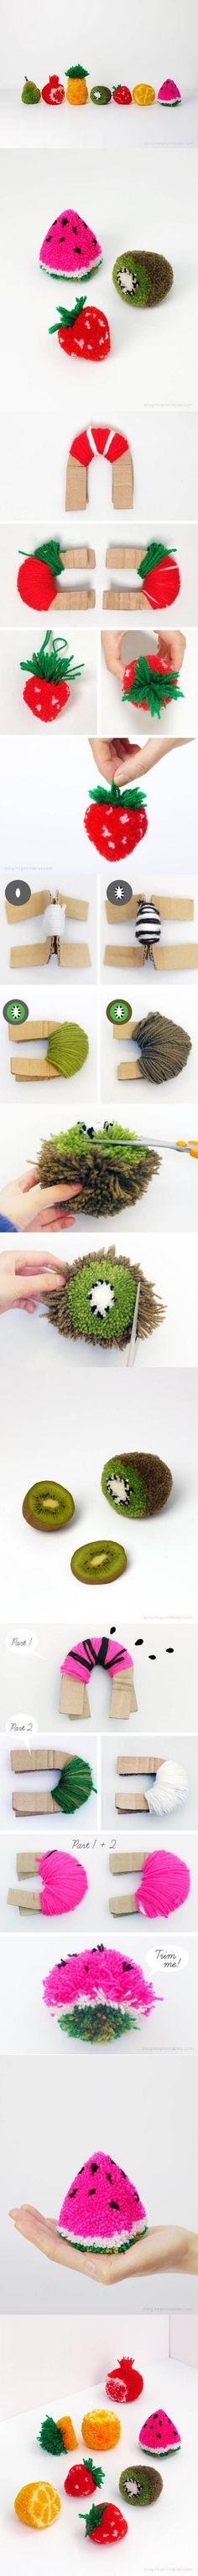 Discover thousands of images about DIY : pompons en forme de fruits. Cute Crafts, Crafts To Do, Hobbies And Crafts, Yarn Crafts, Crafts For Kids, Arts And Crafts, Decor Crafts, Cool Diy Projects, Sewing Projects